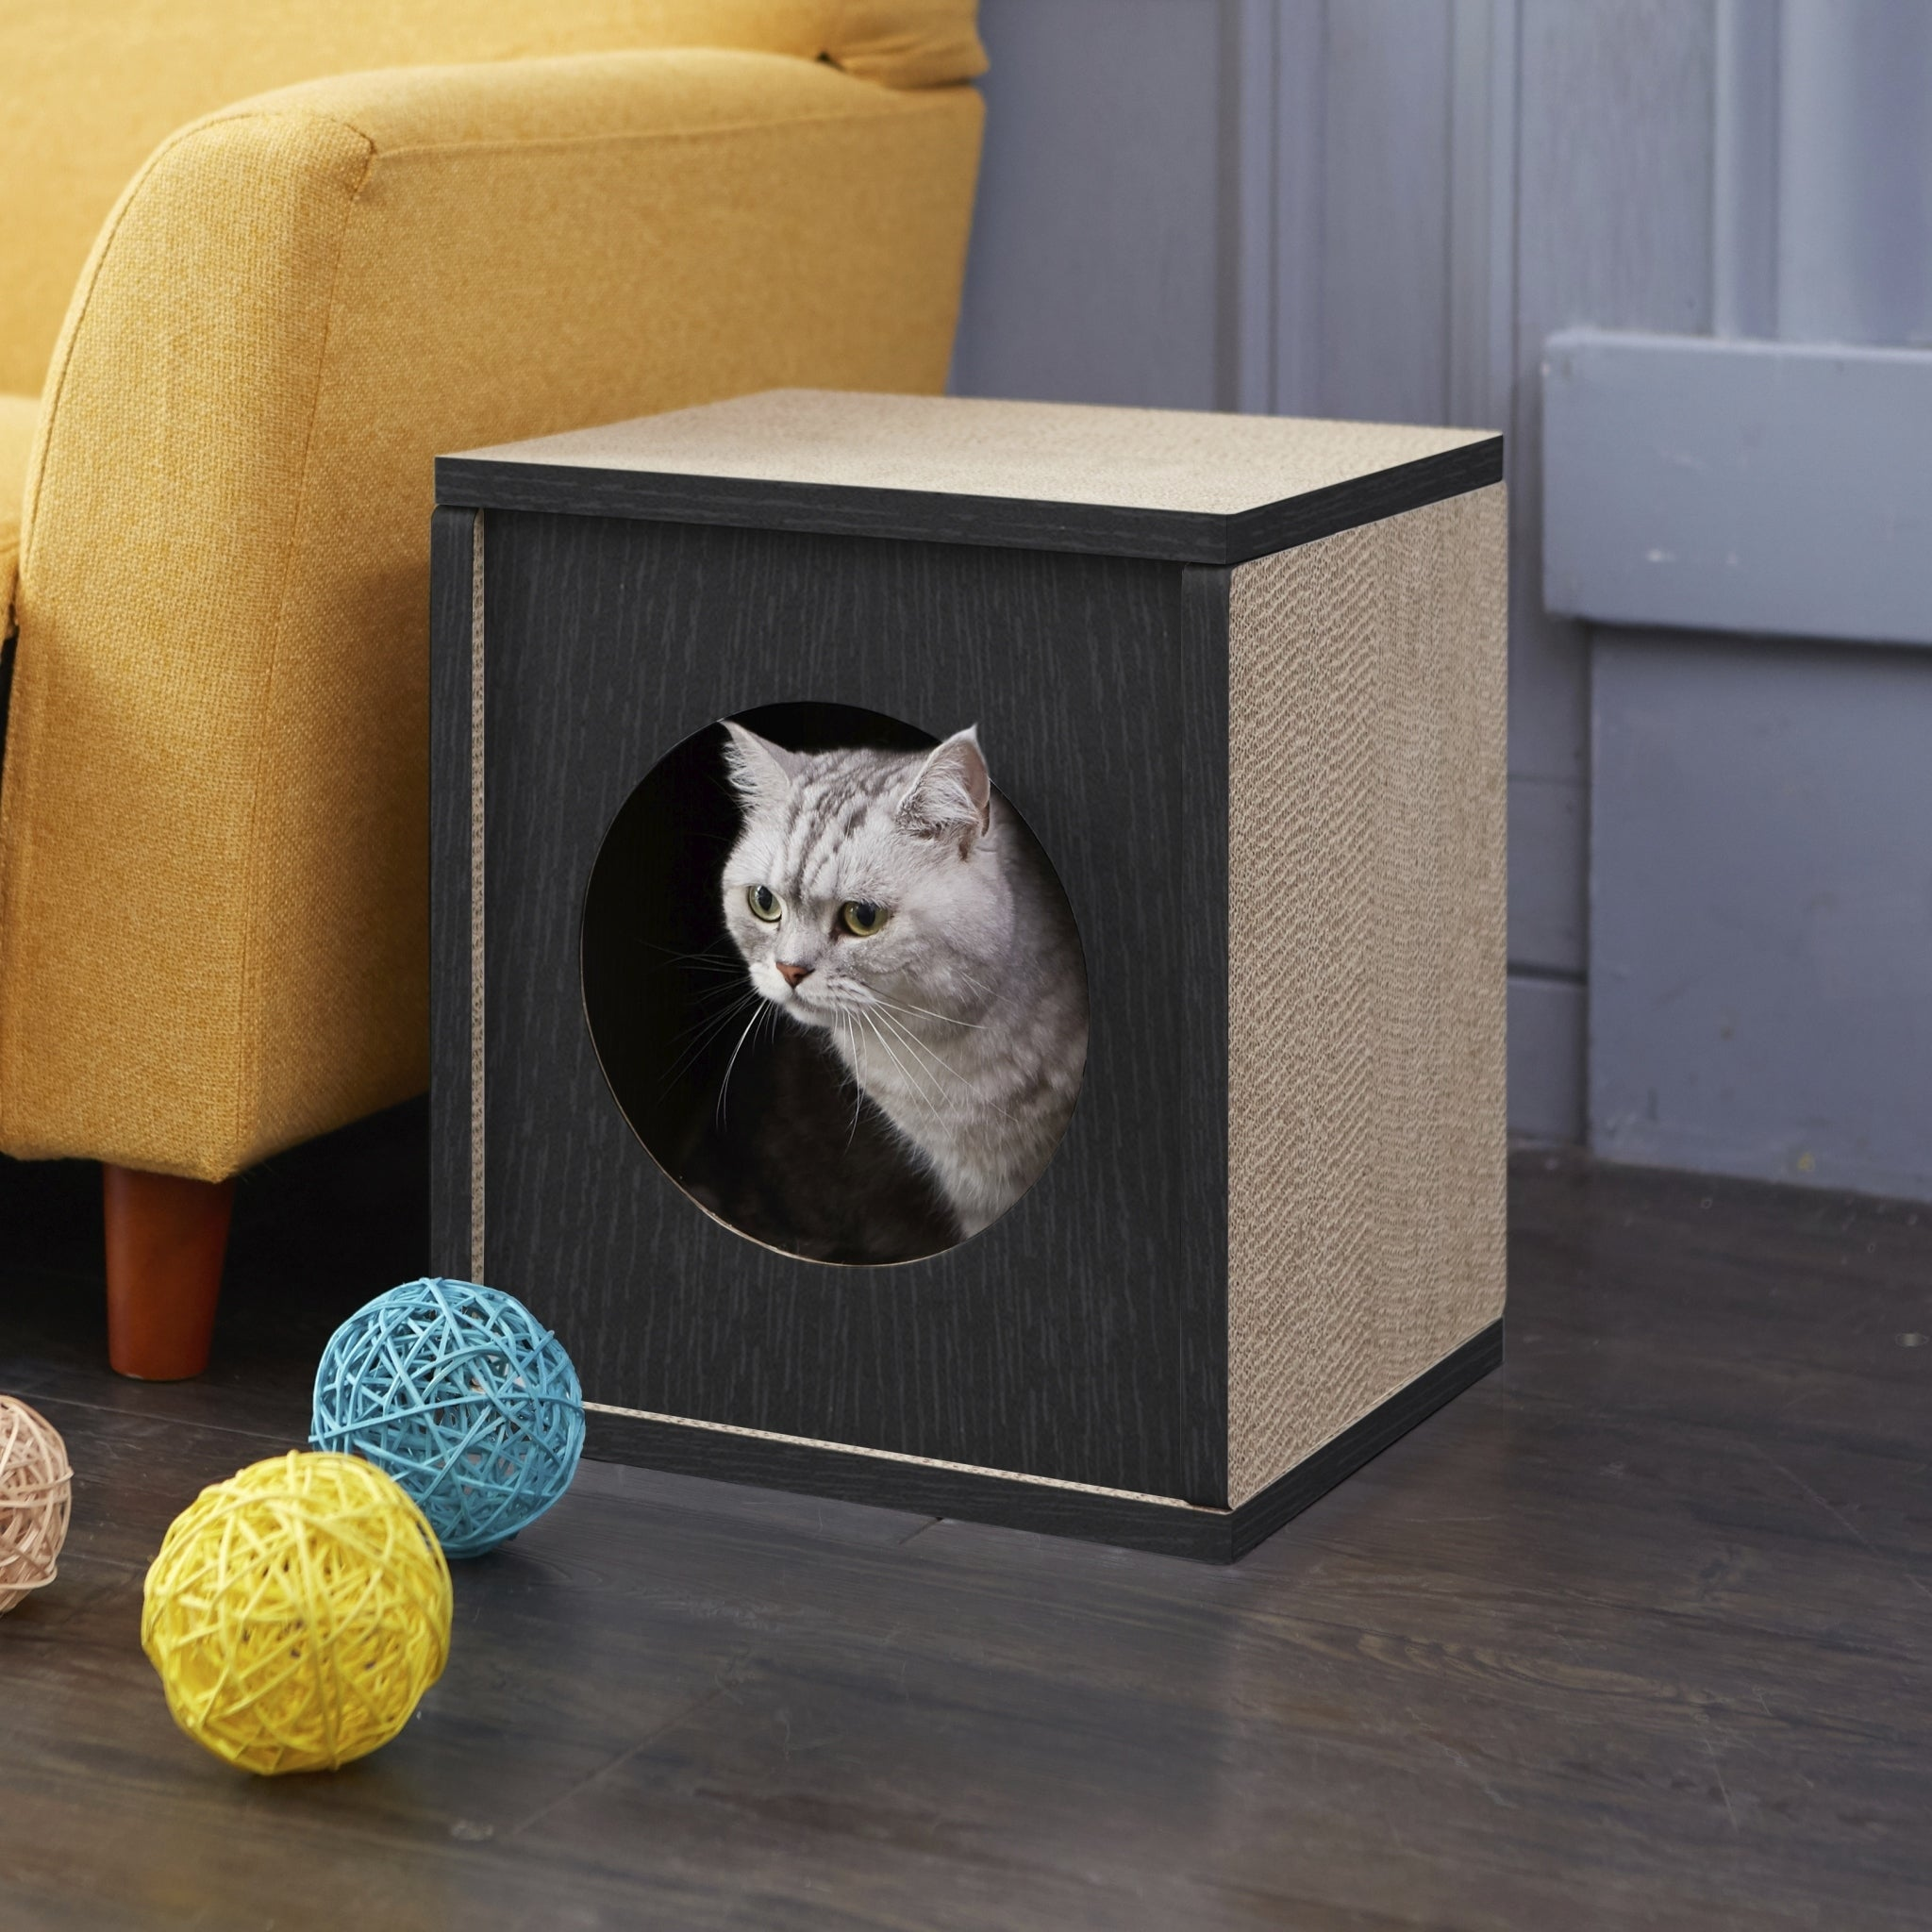 Way Basics Eco Cat Scratcher Cube And House Black Lifetime Guarantee On Free Shipping Orders Over 45 22882719